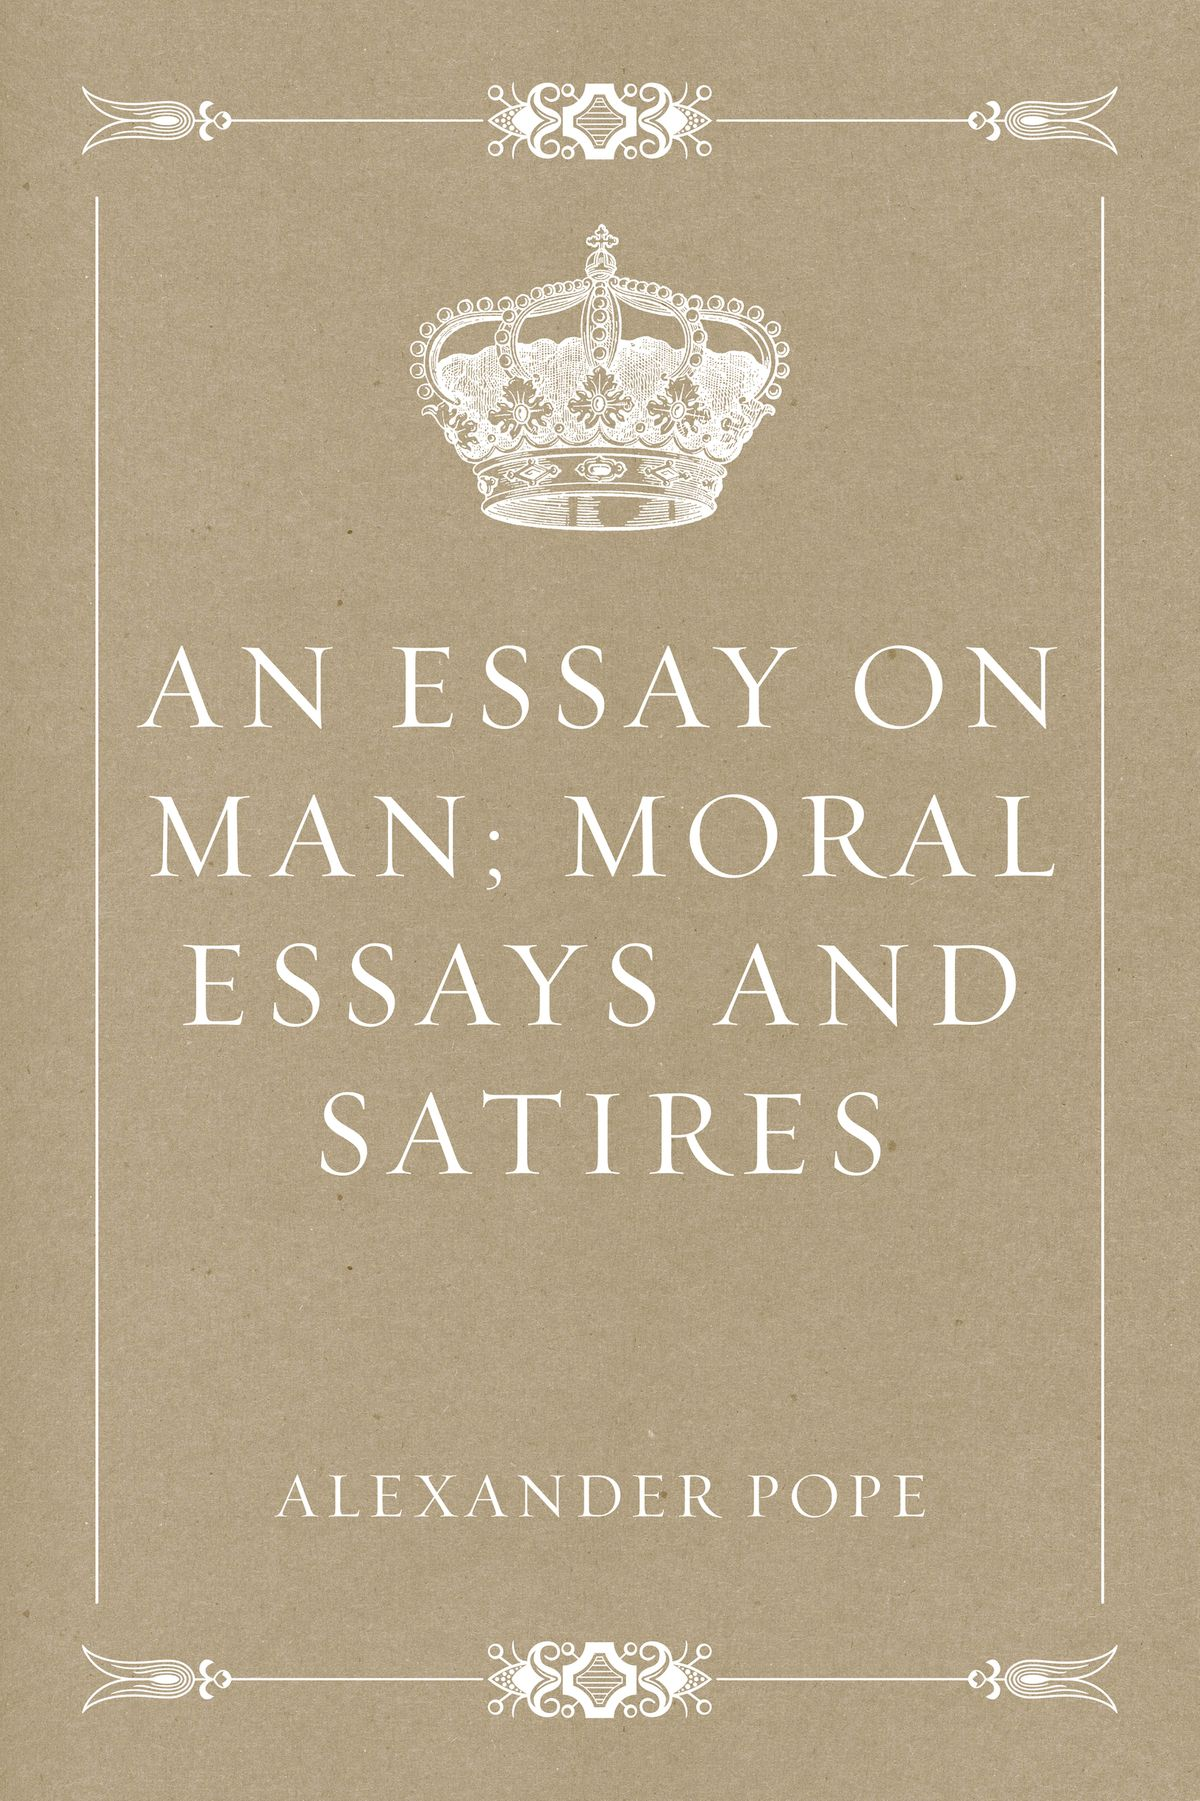 004 Essay Example On Man An Moral Essays And Satires Stirring By Alexander Pope Analysis Pdf Critical Manners Reveal Character Full